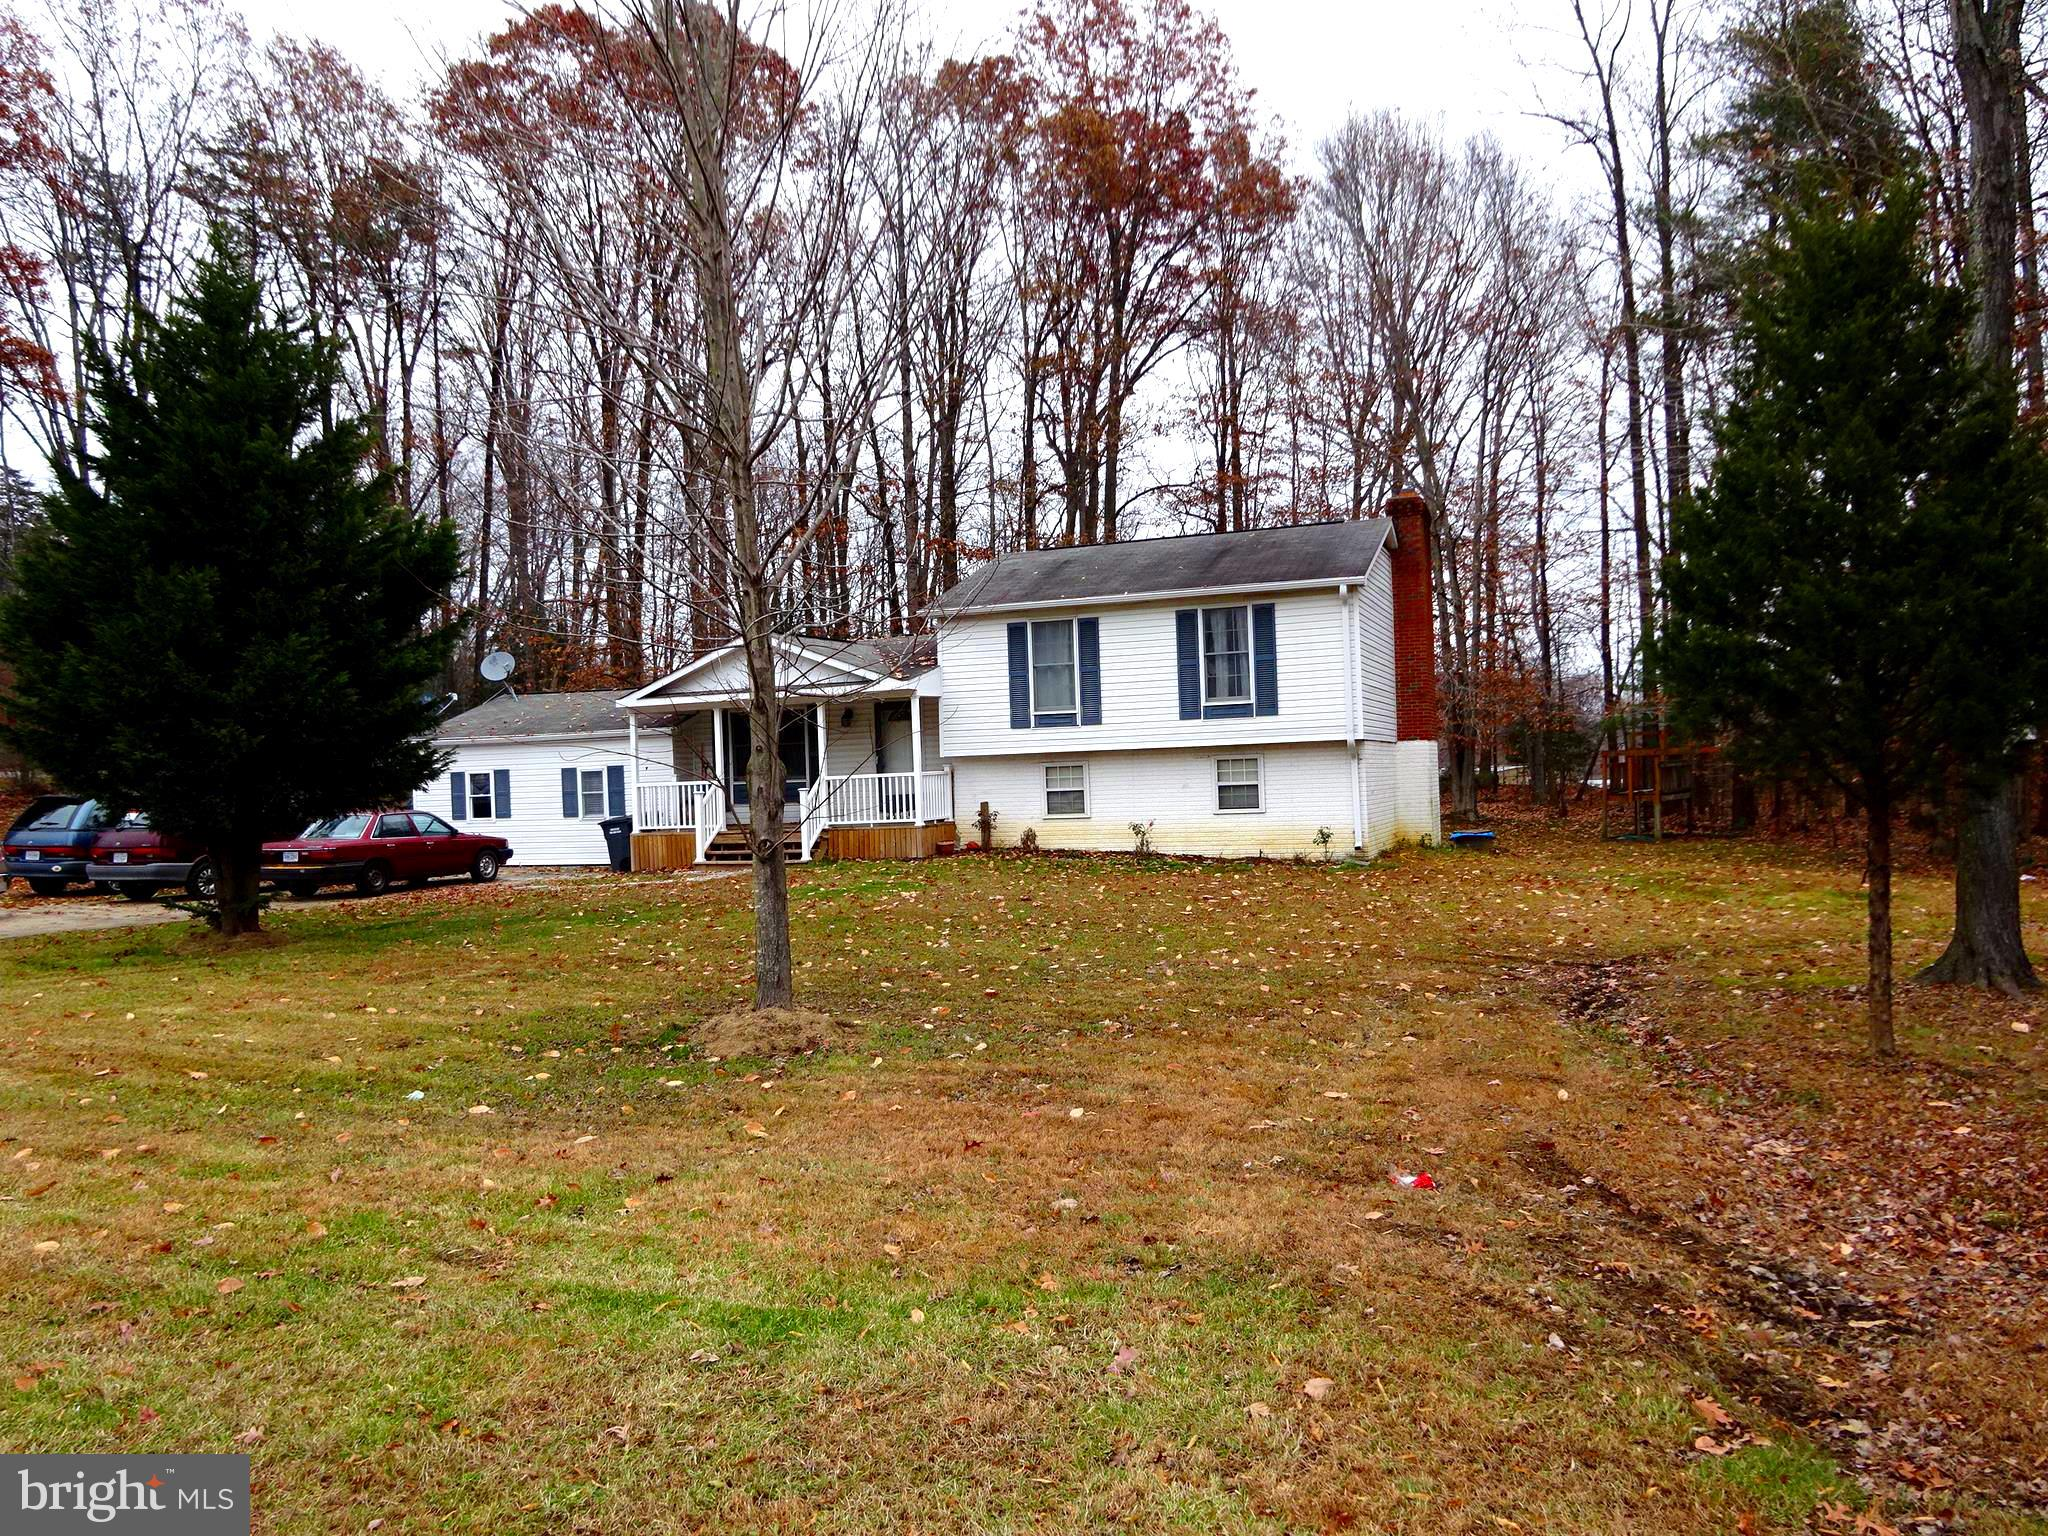 Very nice home sitting on .89 acres, great location mid county, easy access to both North and South